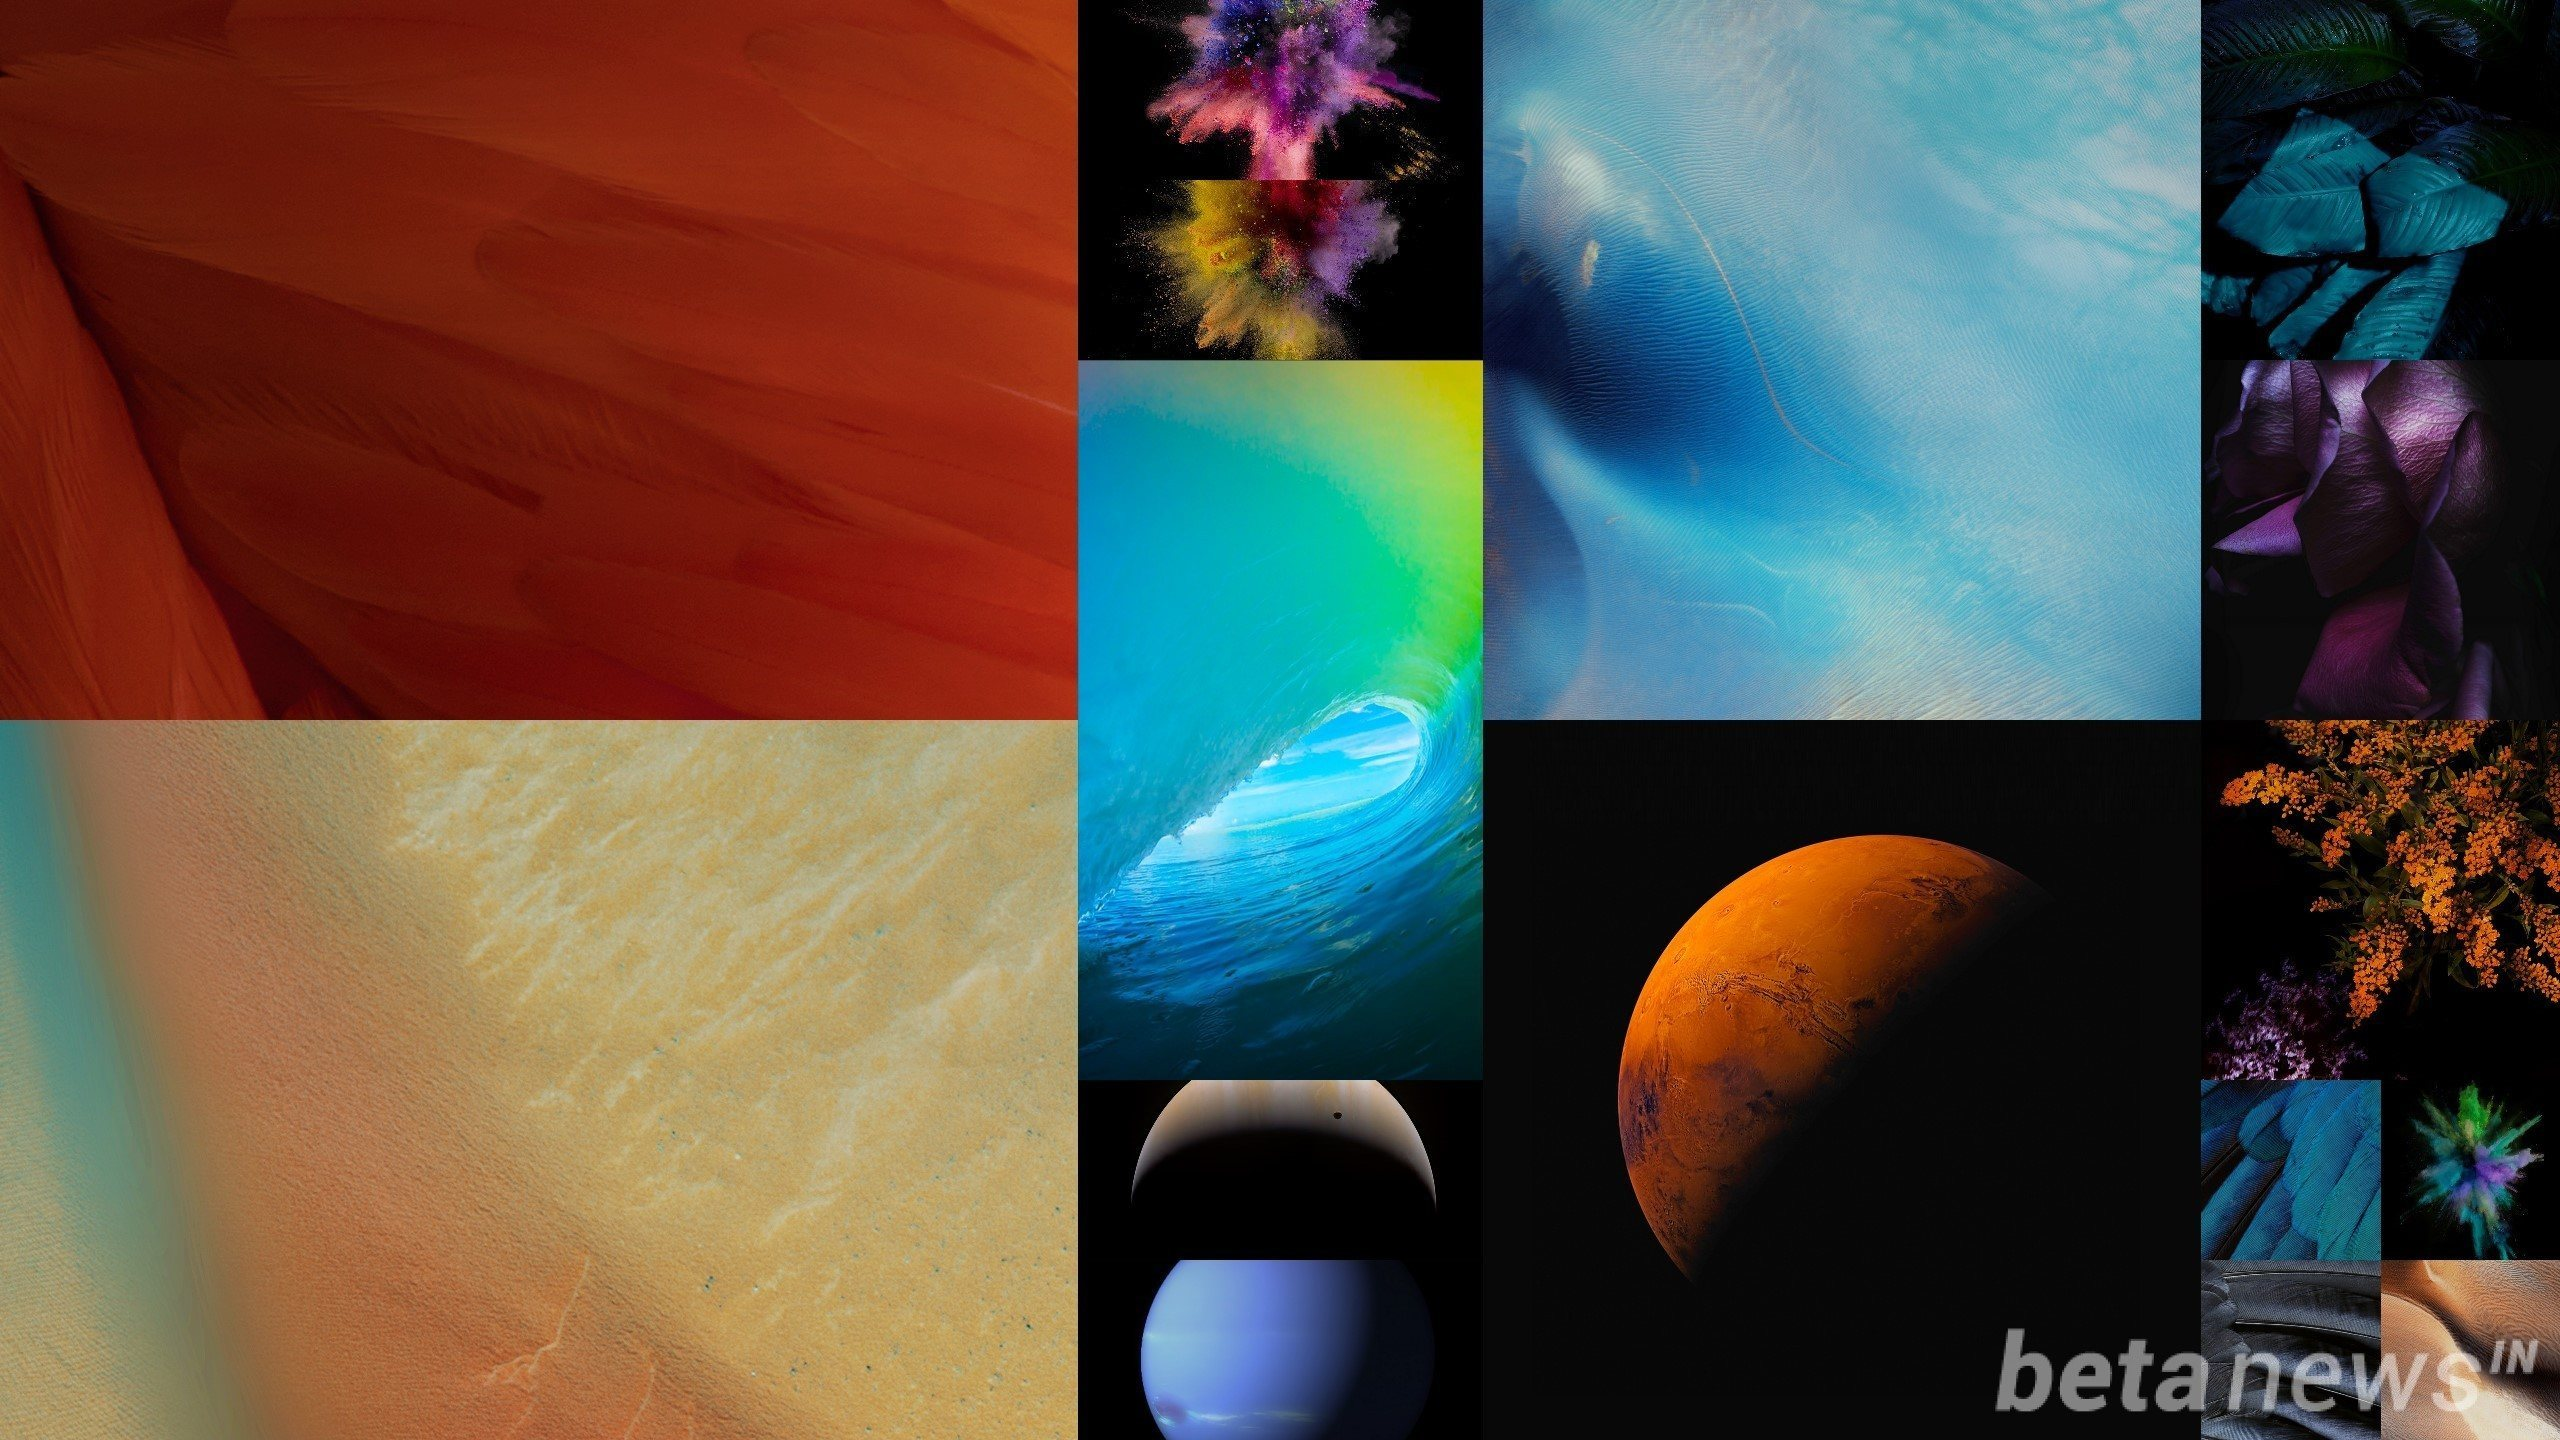 Download iOS 9 Stock Wallpapers for iPhone 6 16 Wallpapers Pack 2560x1440